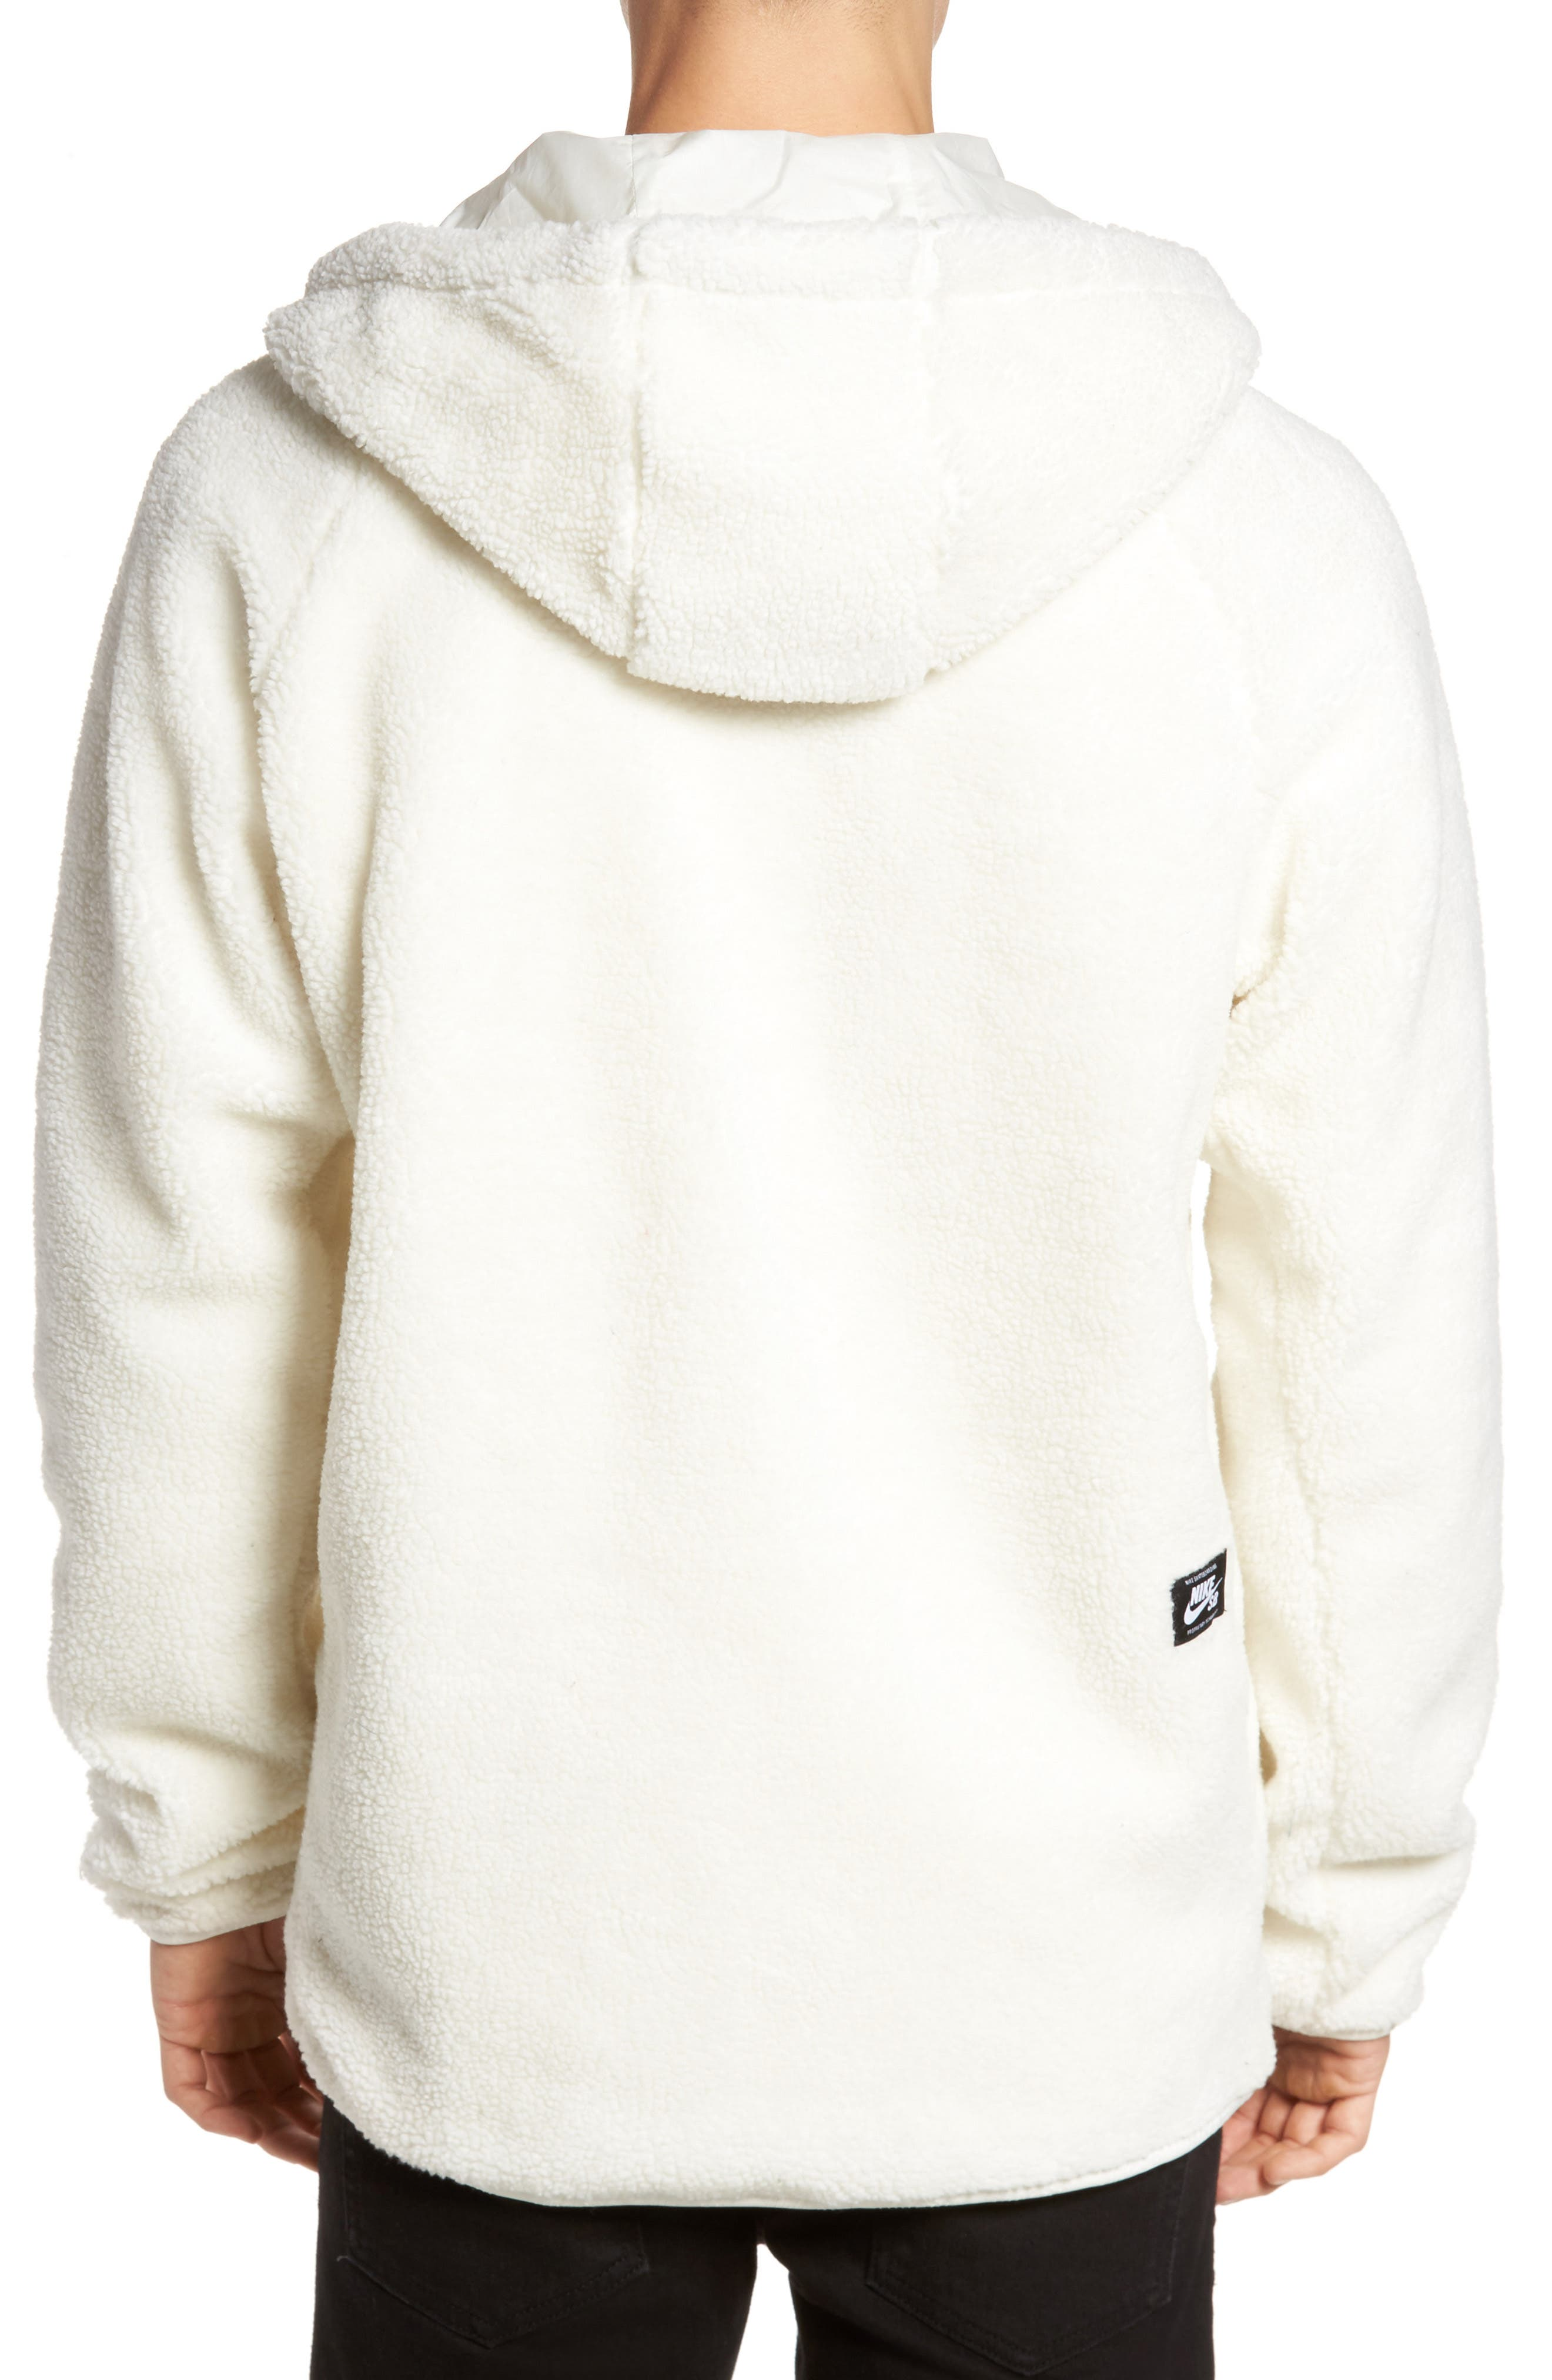 Everett Hoodie,                             Alternate thumbnail 2, color,                             Sail/ Obsidian/ Sail